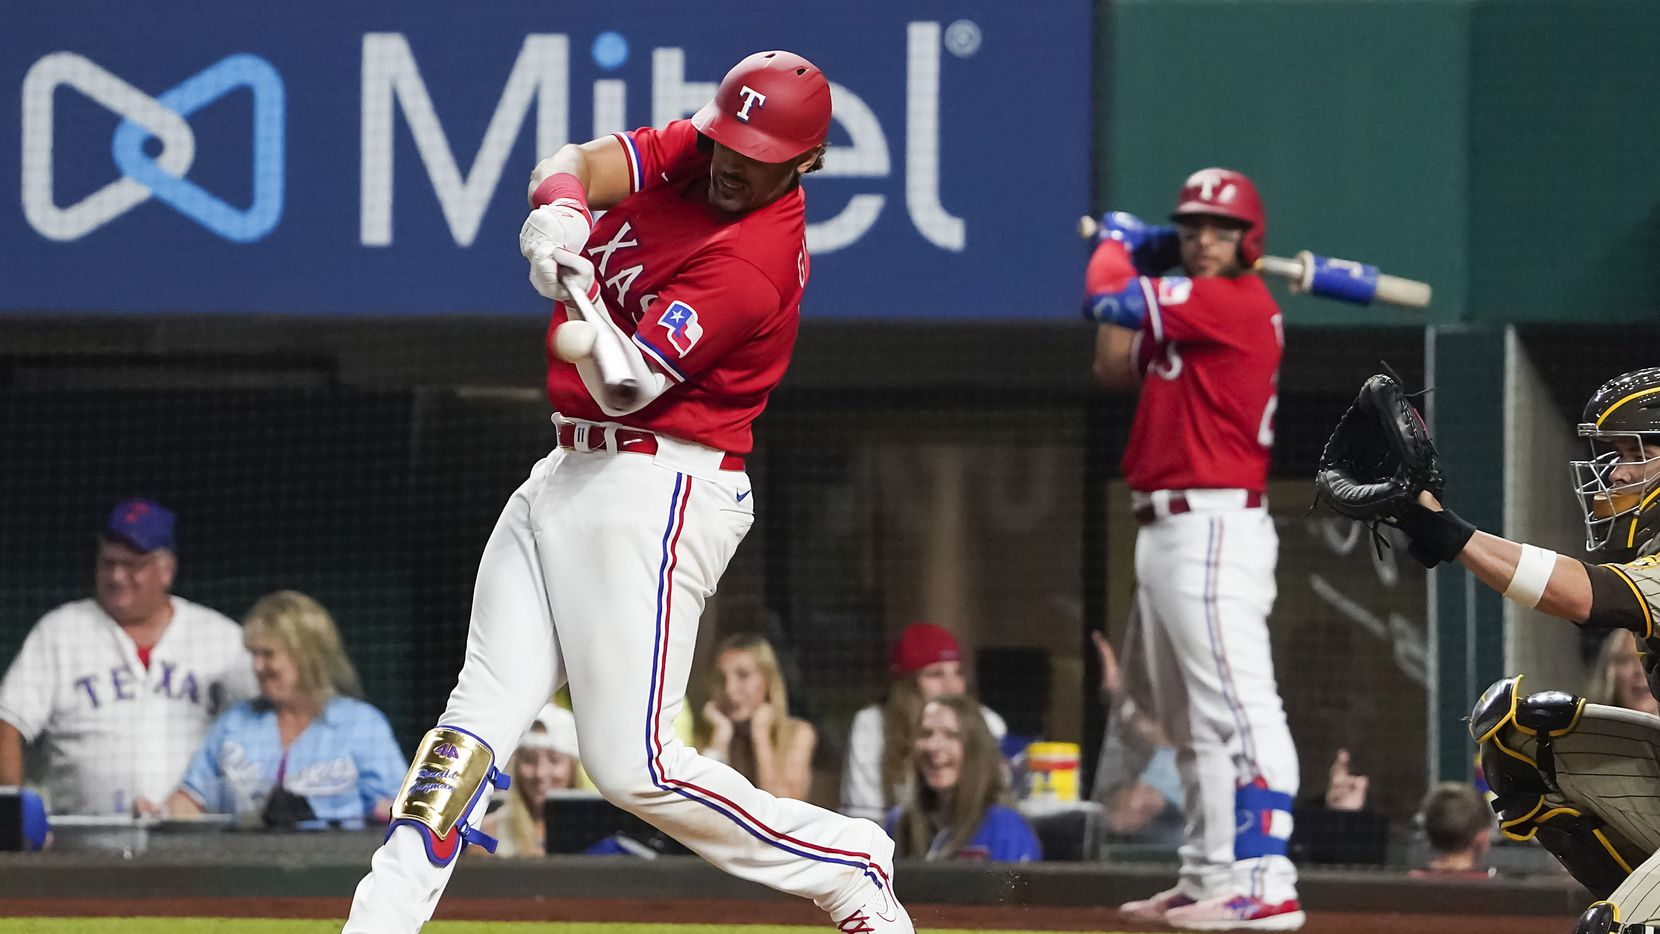 Texas Rangers first baseman Ronald Guzman grounds out against San Diego Padres starting pitcher Joe Musgrove during the eighth inning at Globe Life Field on Friday, April 9, 2021.